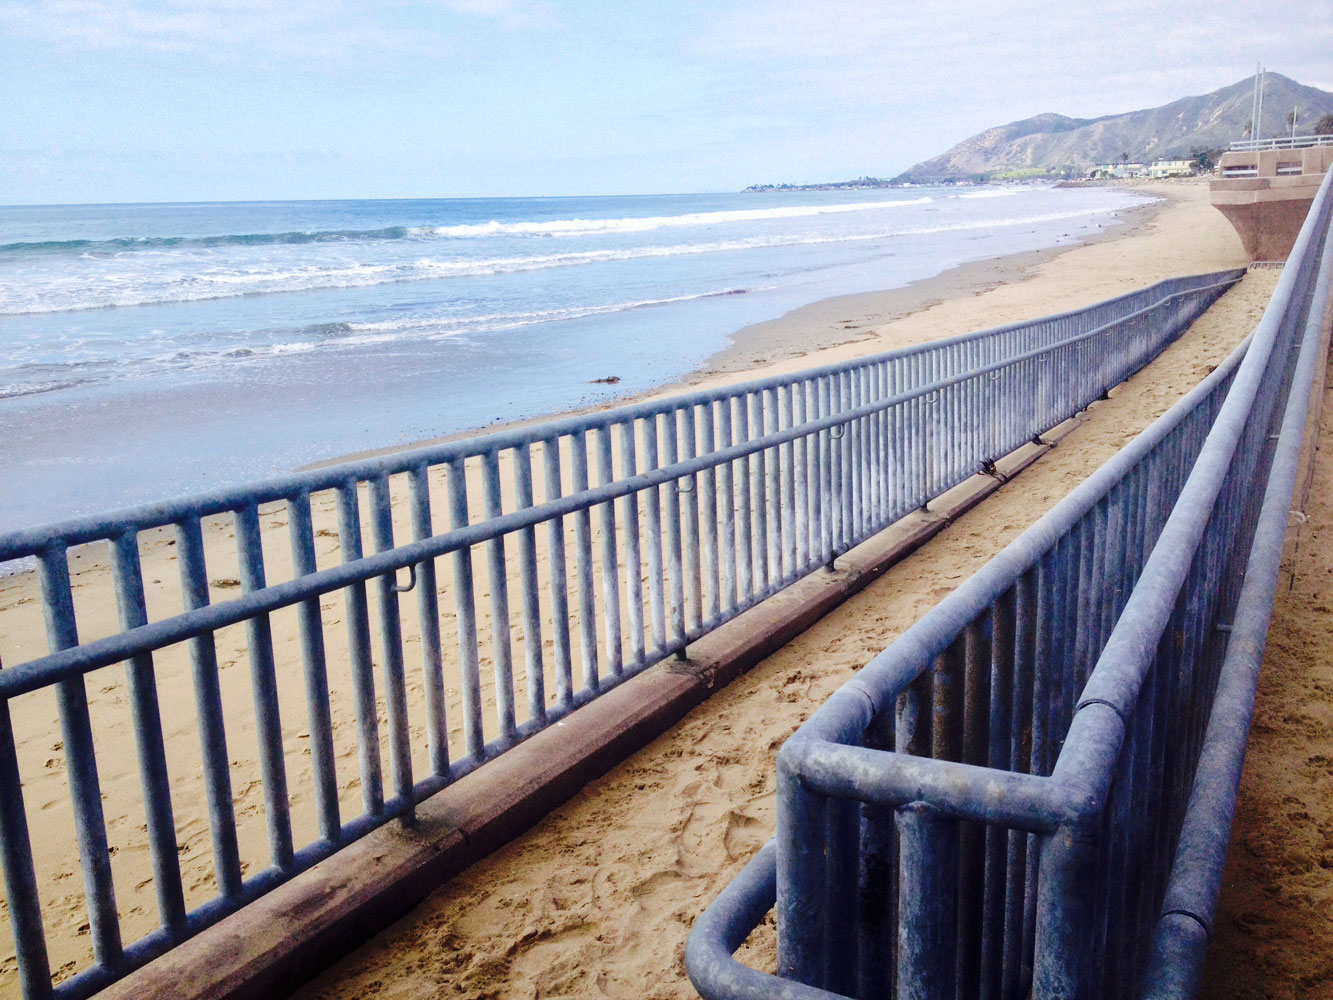 New seawall creates better access for beachgoers in Ventura County